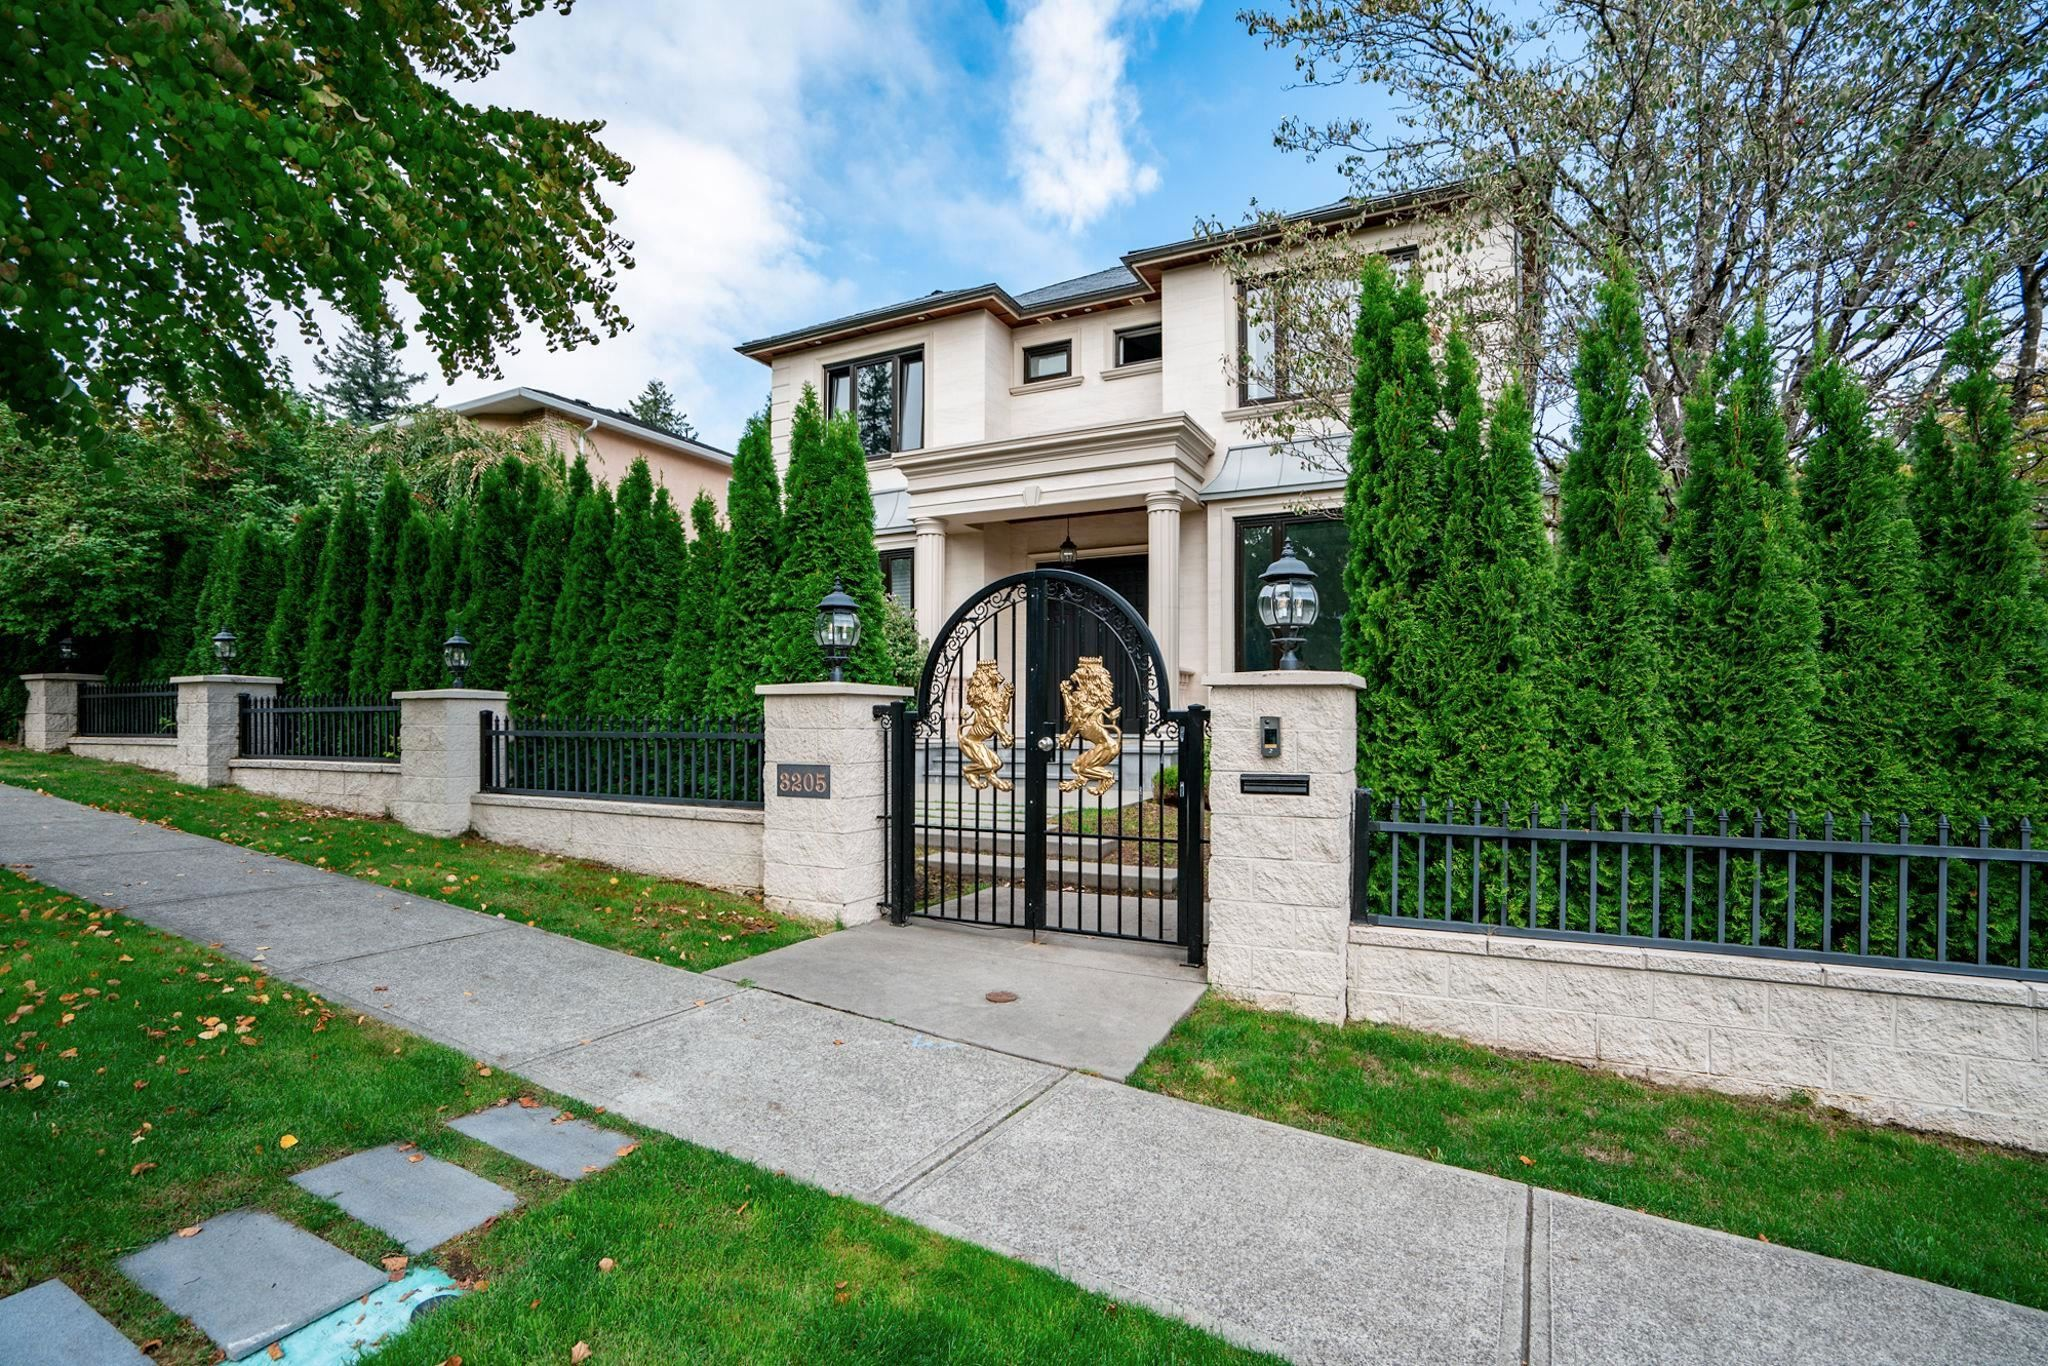 Photo 3: Photos: 3205 W 34TH Avenue in Vancouver: MacKenzie Heights House for sale (Vancouver West)  : MLS®# R2615490